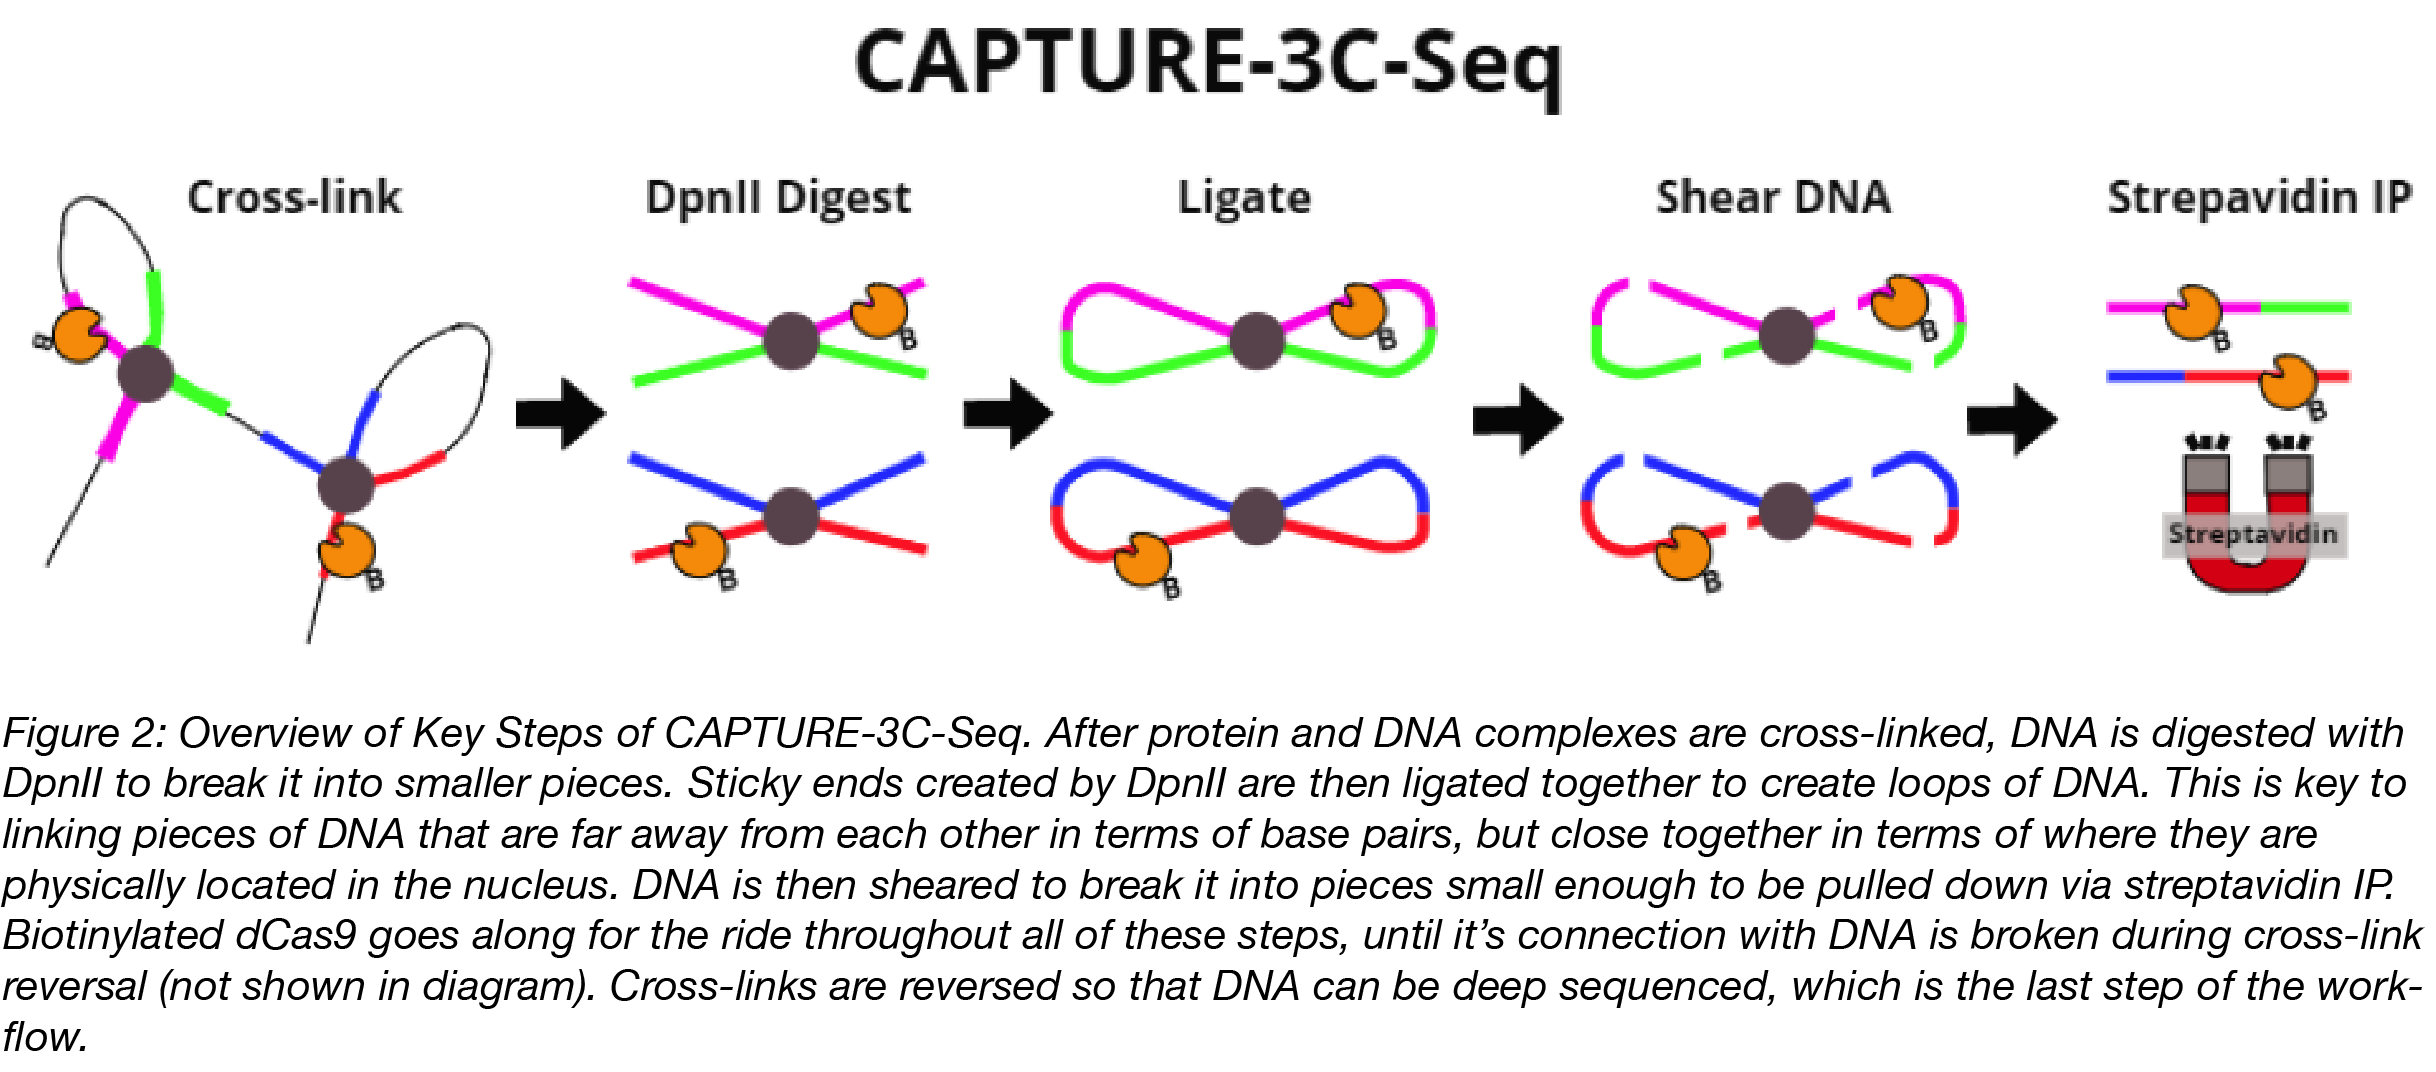 CAPTURE-3C-Seq